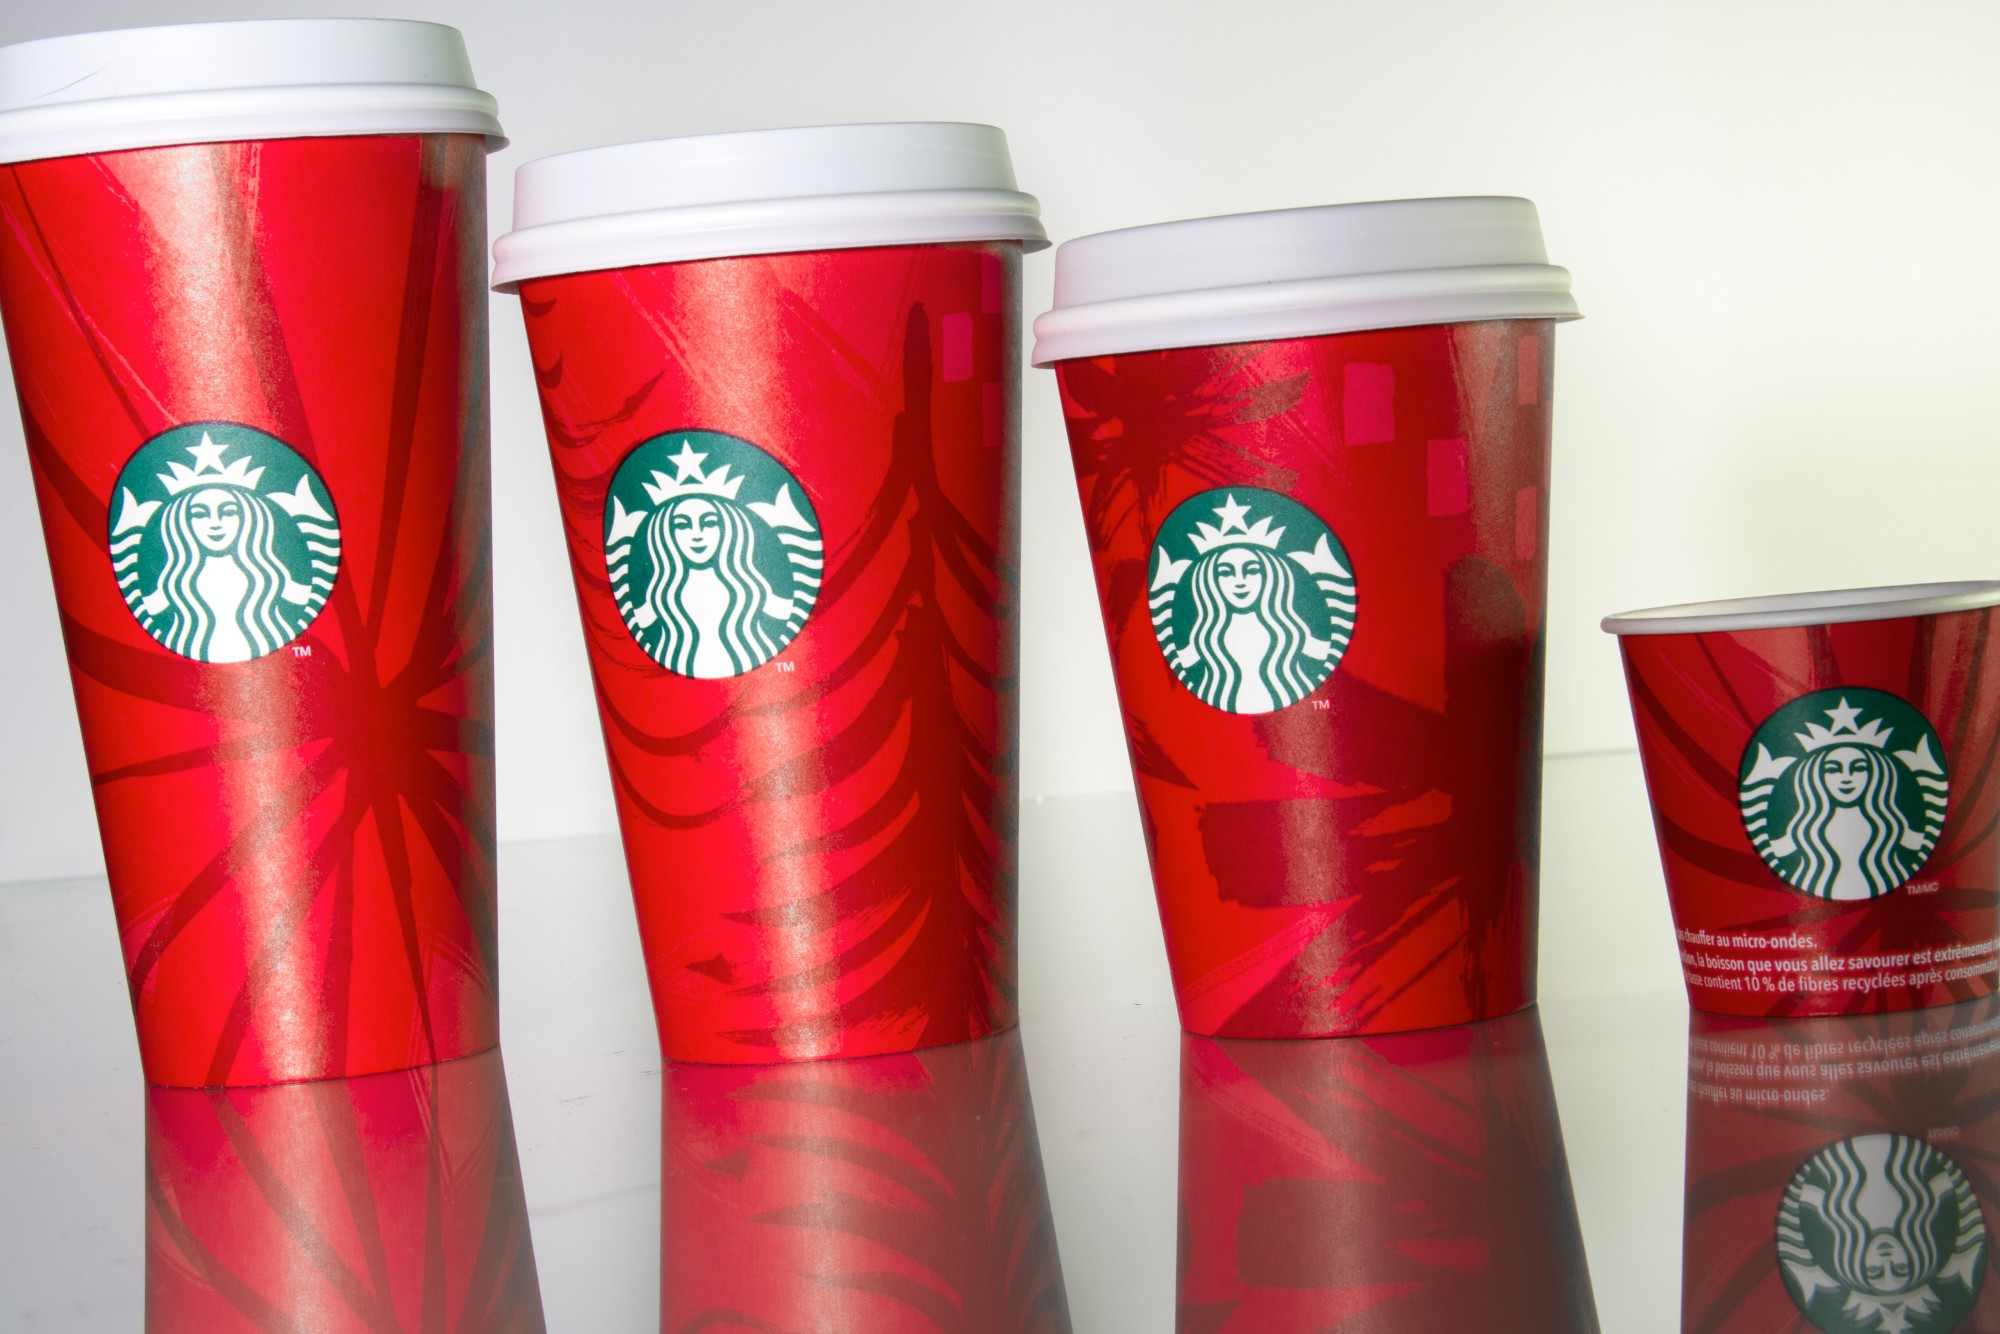 What's Got People So Heated about Starbucks?